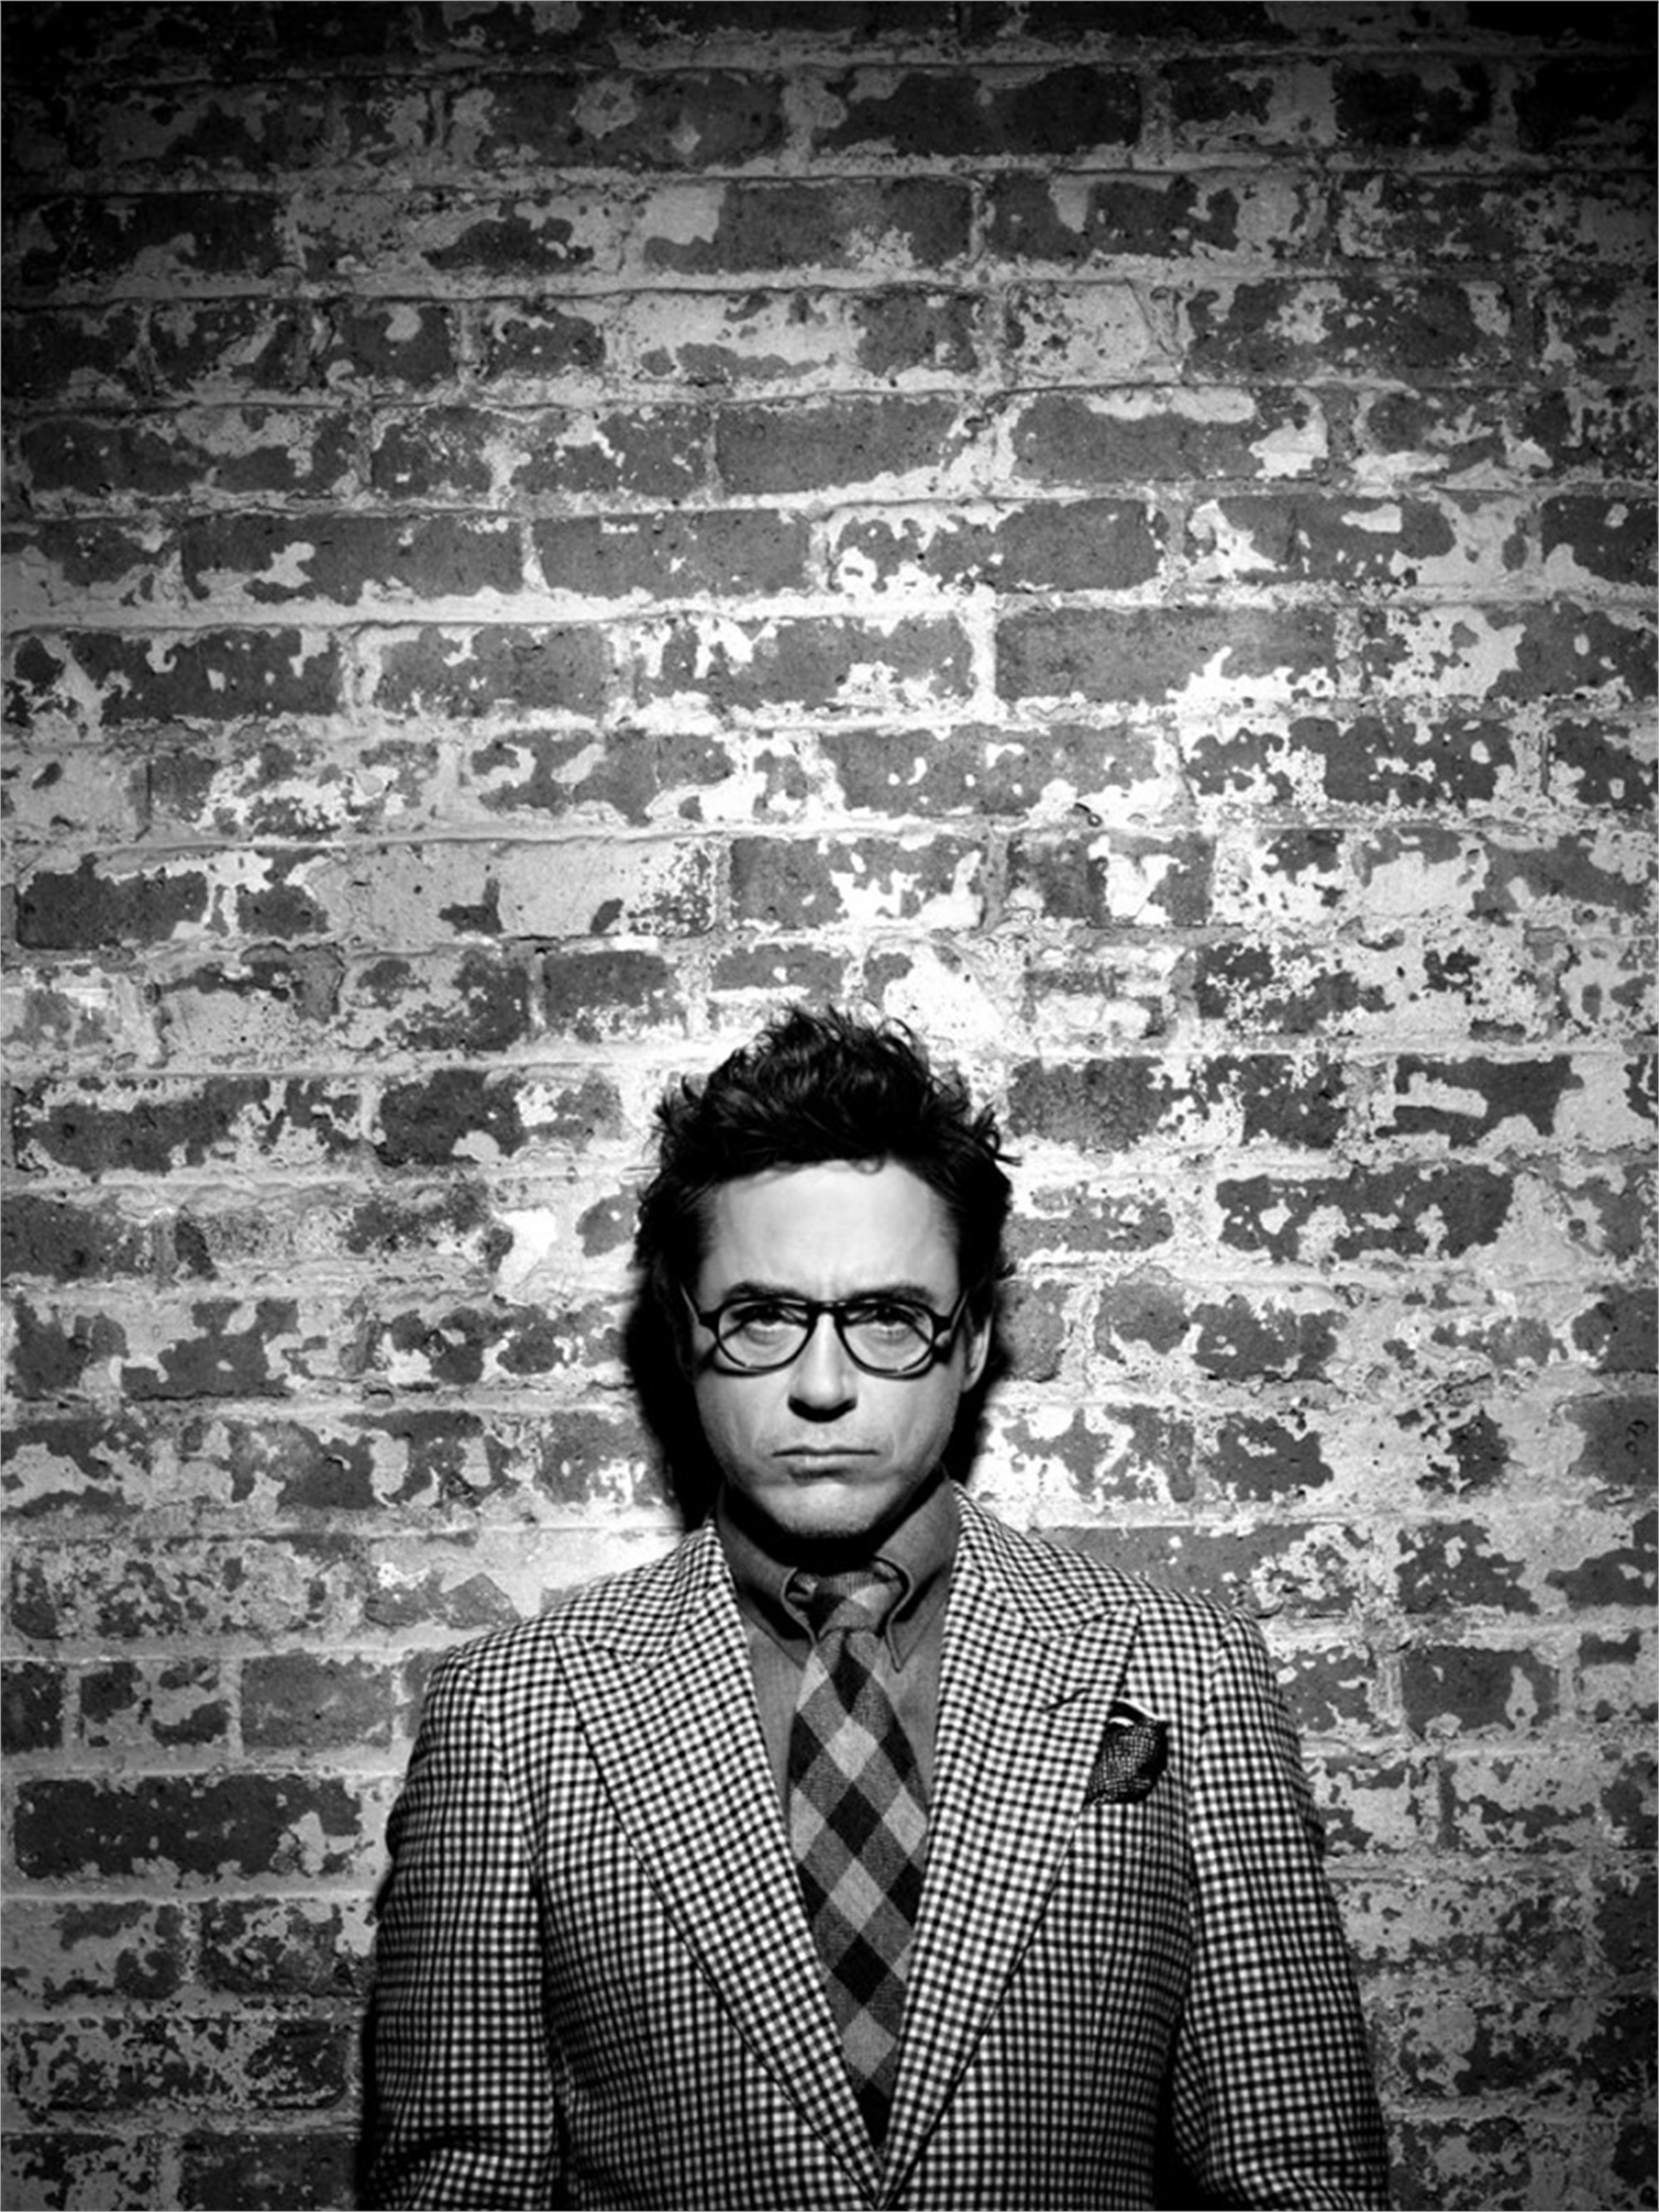 10003 Robert Downey Jr. Brick Wall BW by Timothy White